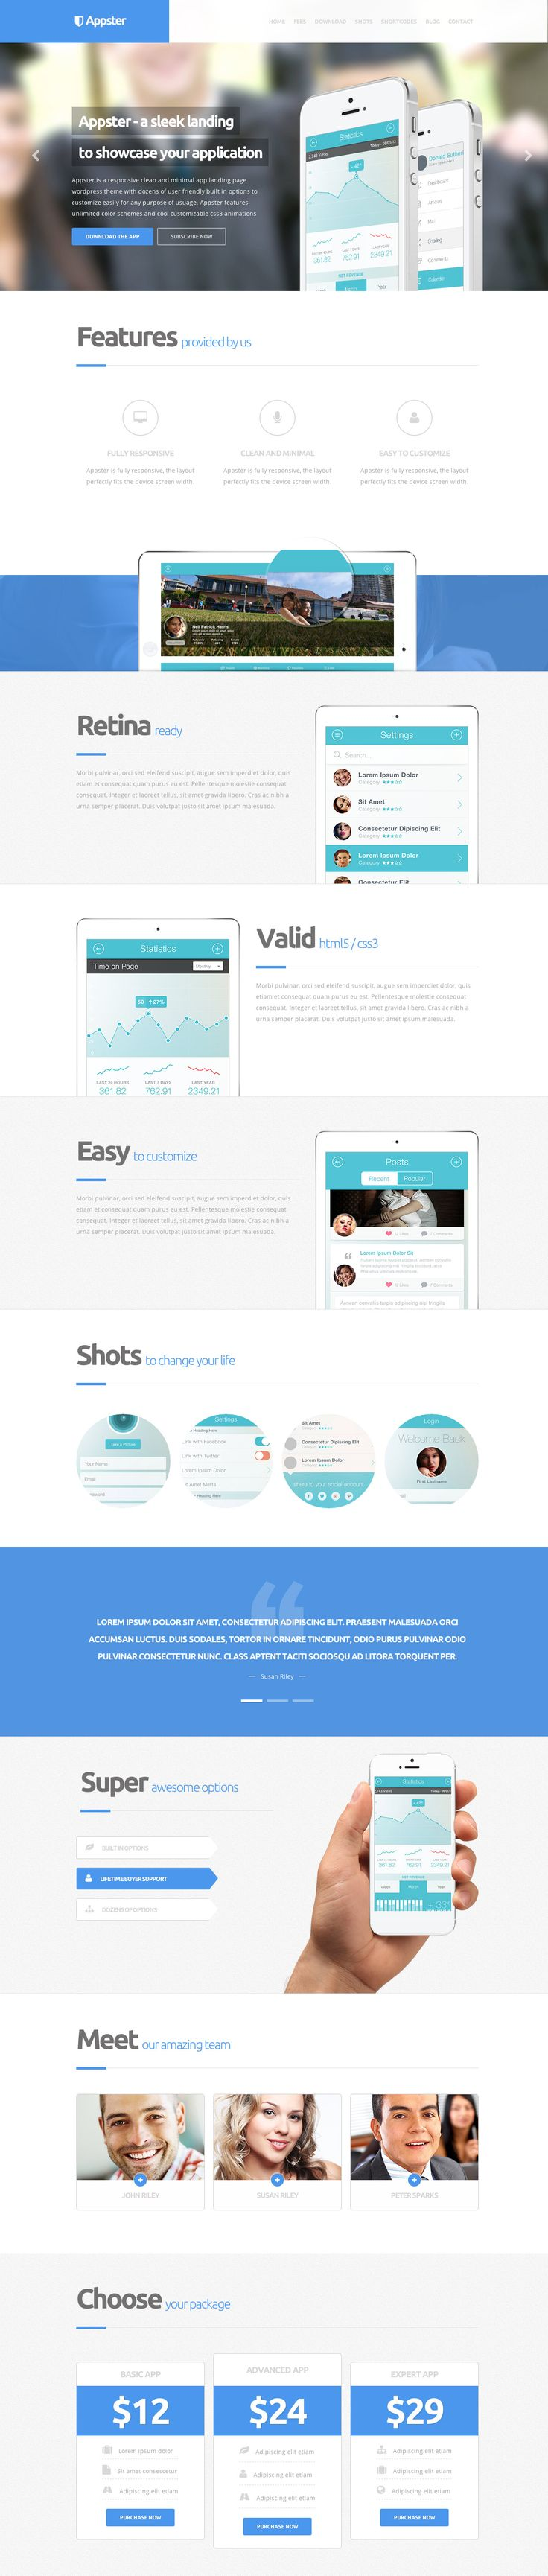 'Appster' is an elegant one page Wordpress theme perfect for promoting your application. It features a modern, crisp feel which will fit very well with apps that follow iOS7 conventions. Unlimited color options and a whole heap of admin area options makes this theme easy to customize if you don't feel like altering any code. Other notable features include 12 different home layouts, a fully responsive design, 3-tier pricing table and the PSD template is included.